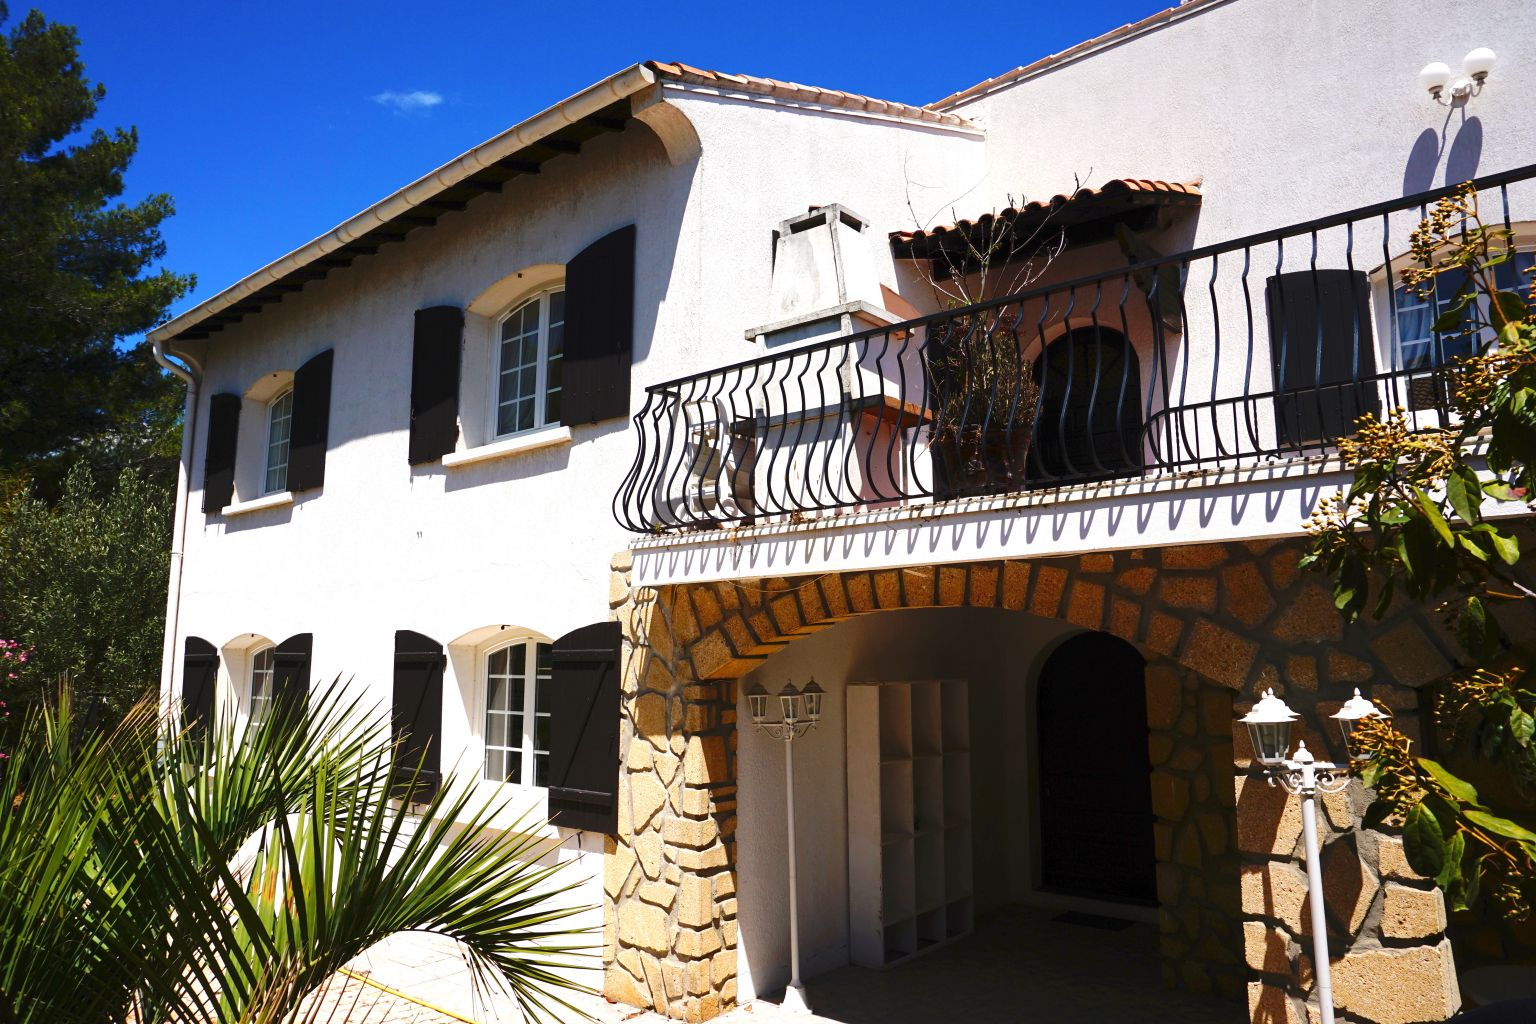 Villa-Maison-Appartements-garage-parking-terrasse